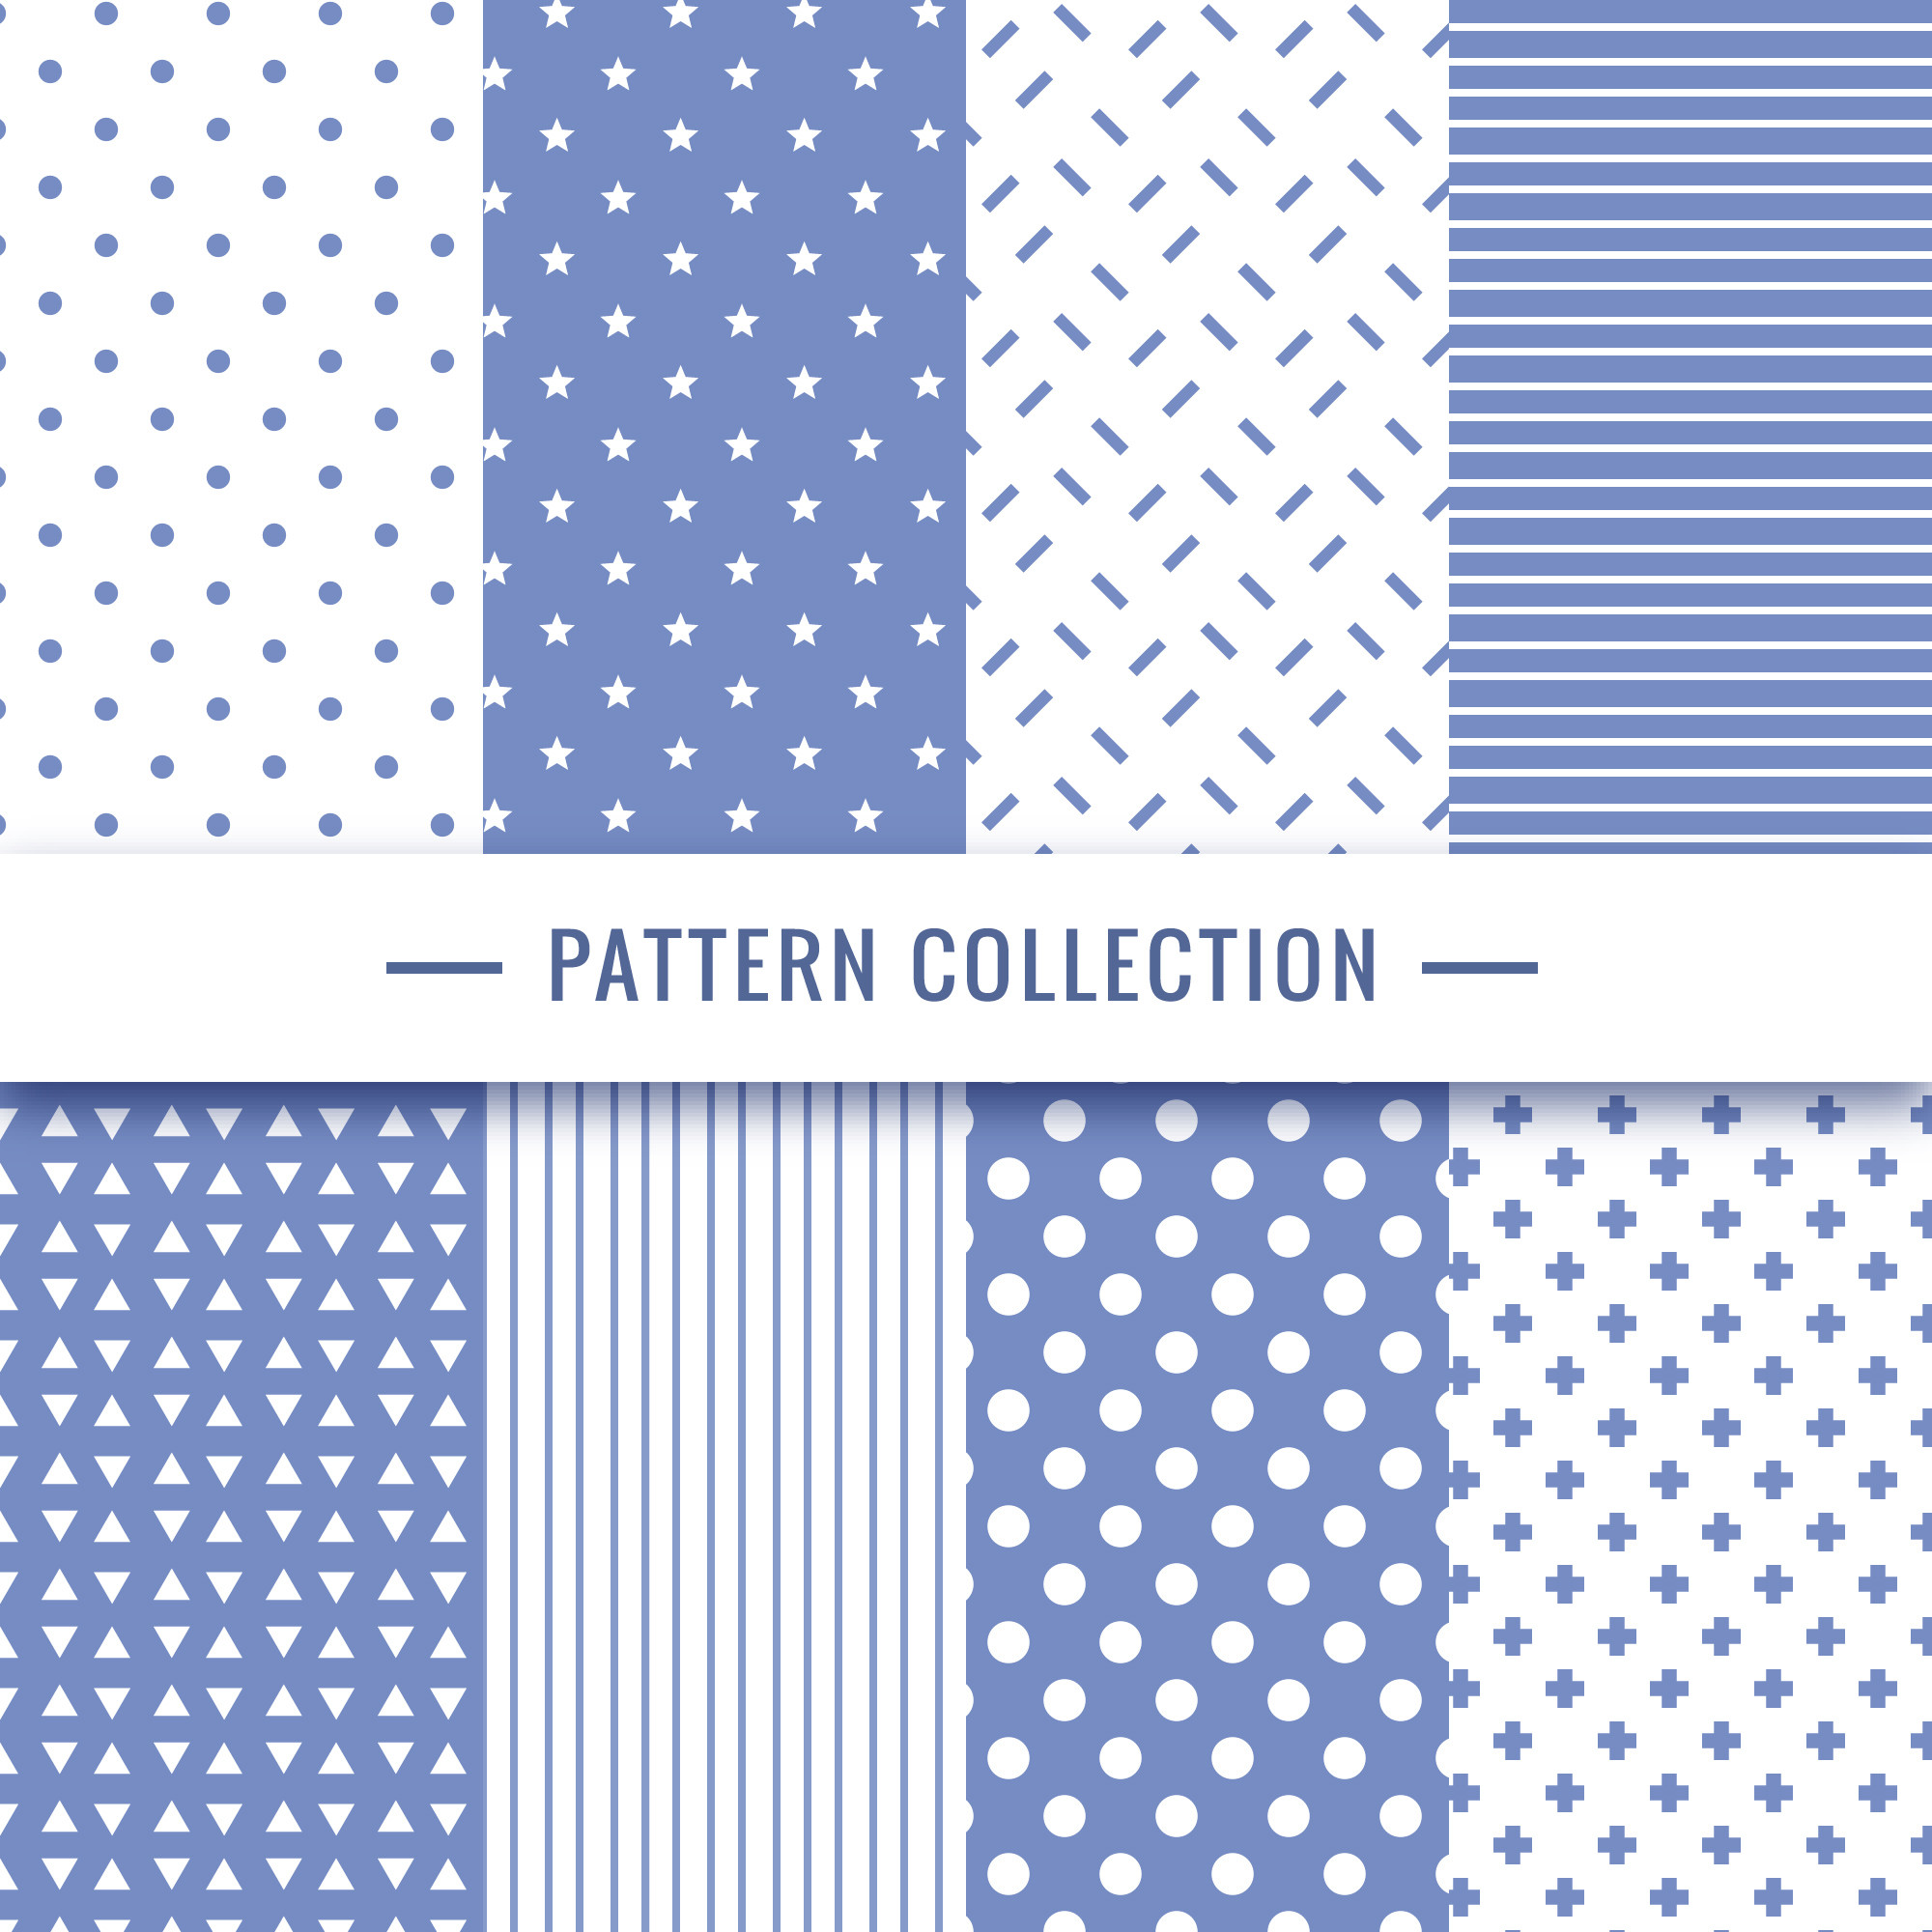 Geometric seamless pattern collection in blue colors